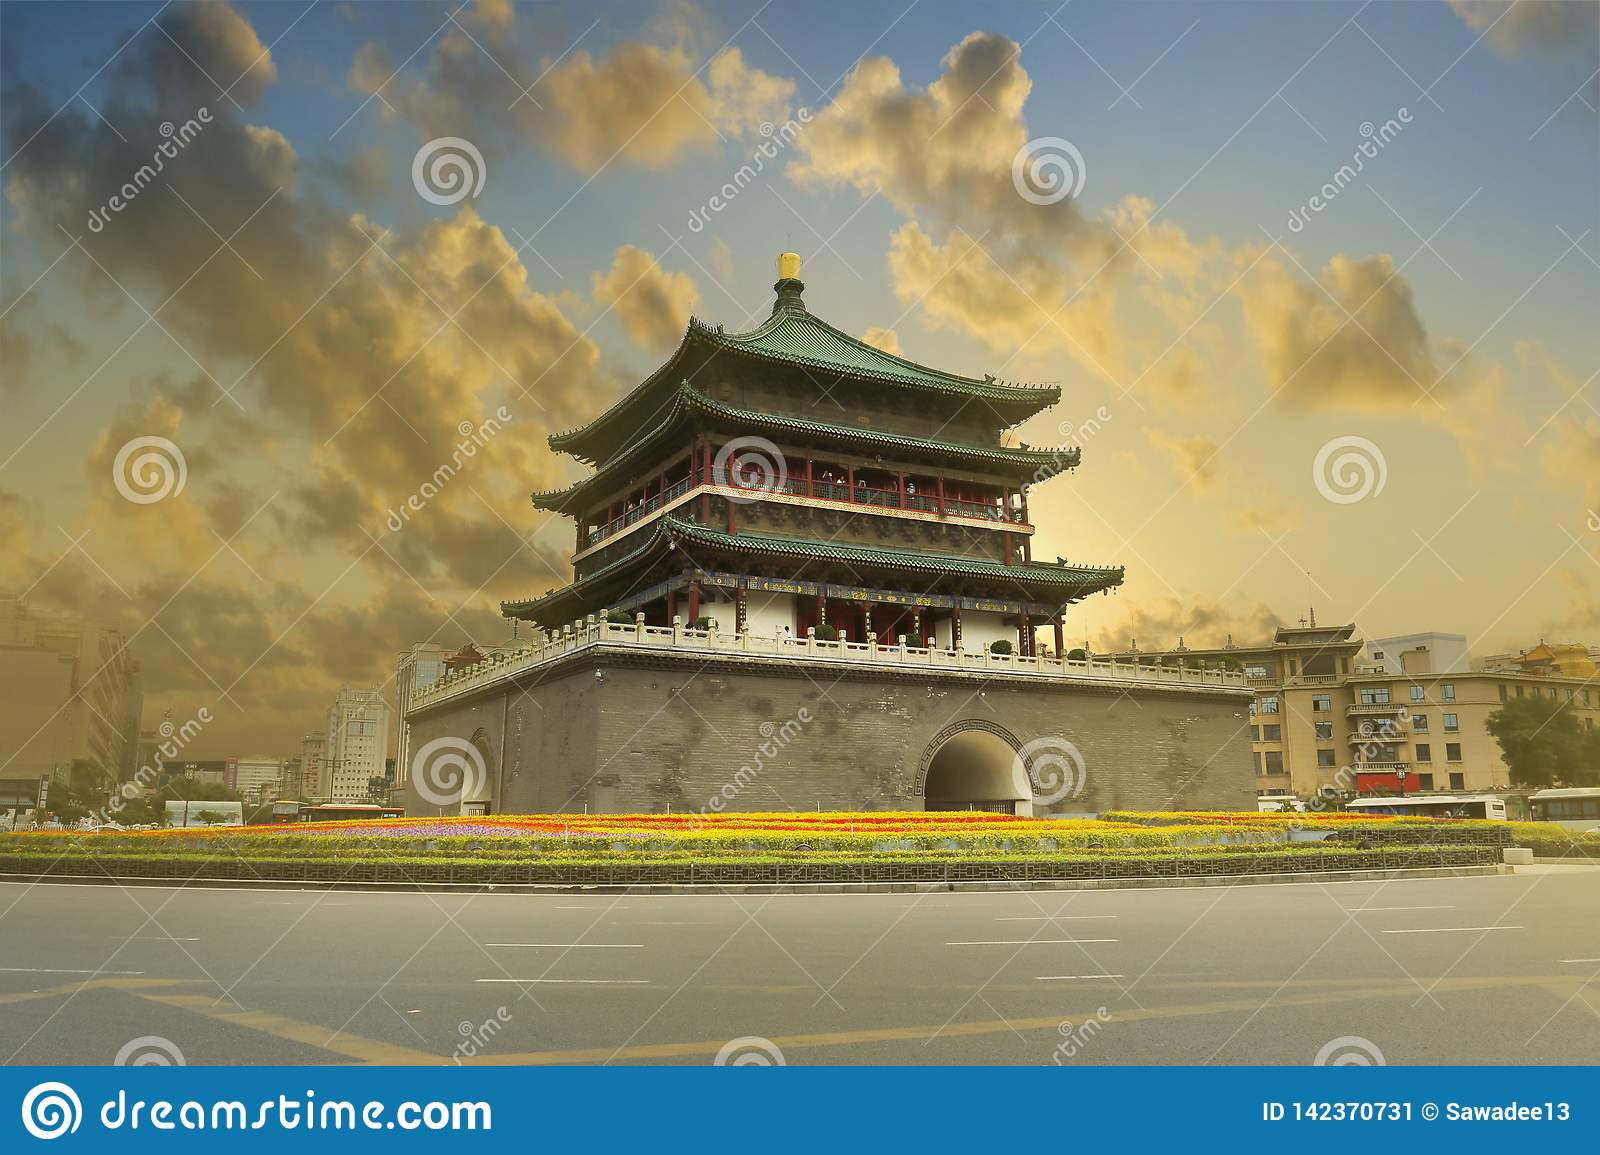 Sunset on the bell tower of the old city wall of xi an ,Shanxi ,china